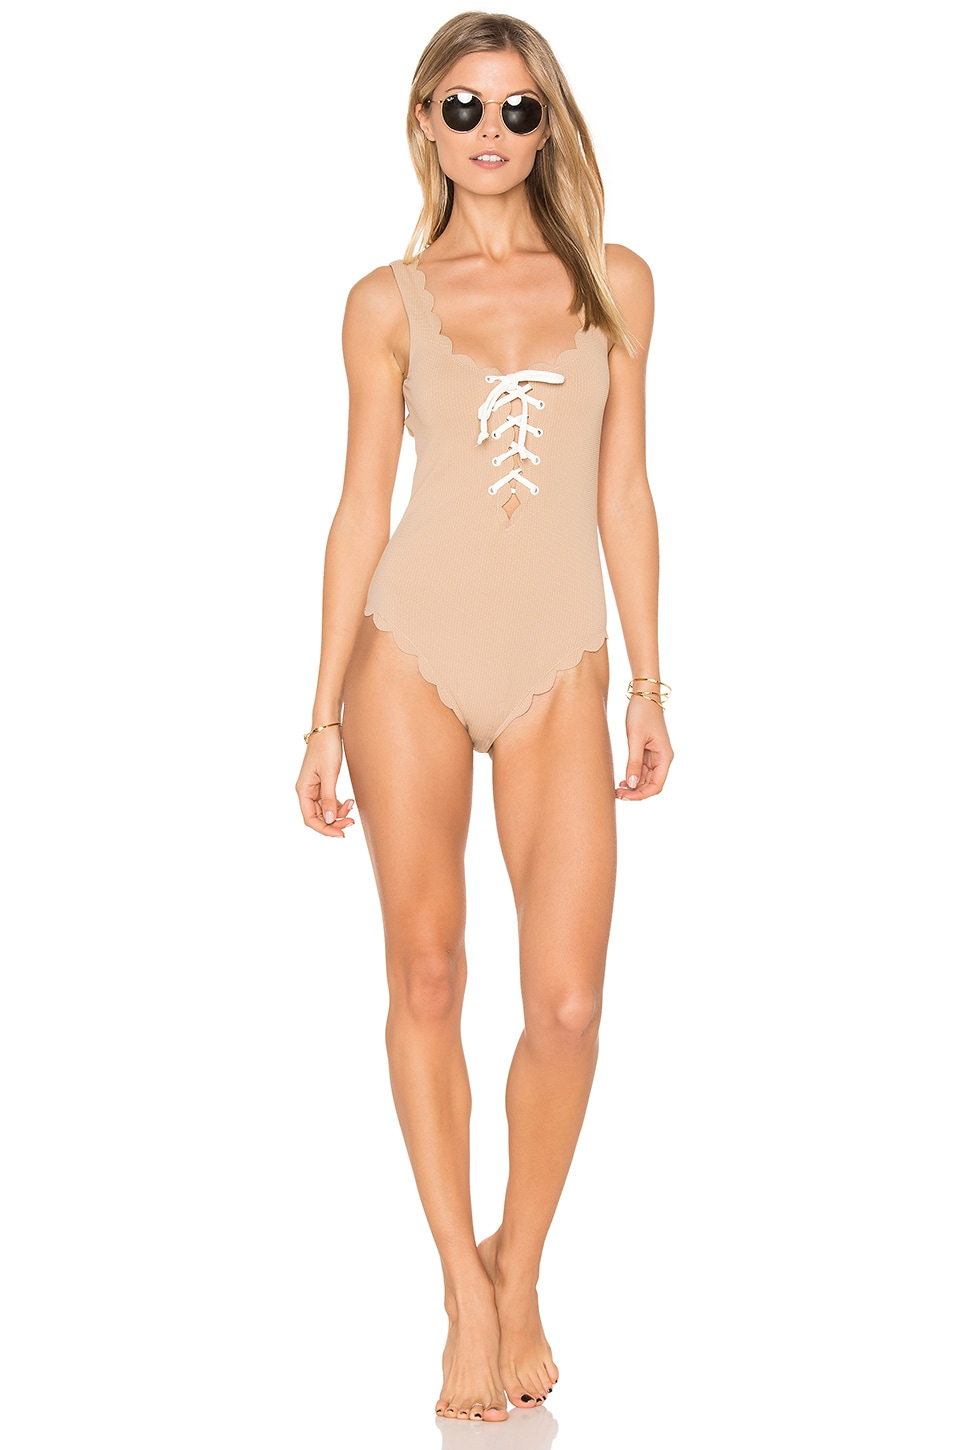 Marysia Swim Palm Springs Tie One Piece in Tan & White